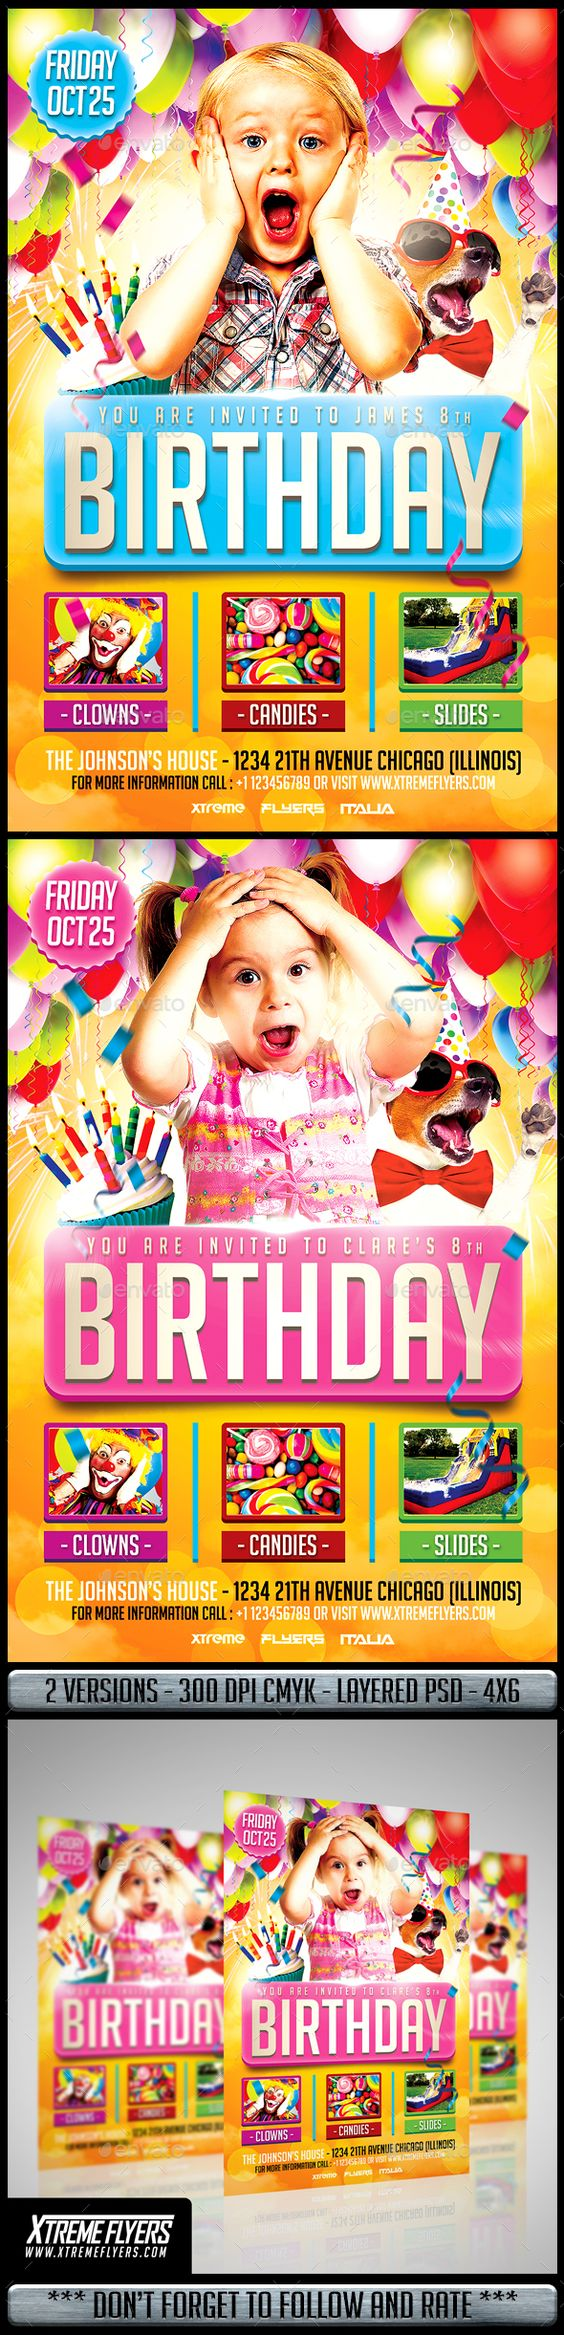 kids birthday party flyer kid flyer template and birthdays kids birthday party flyer clubs parties events flyer template businessflyer